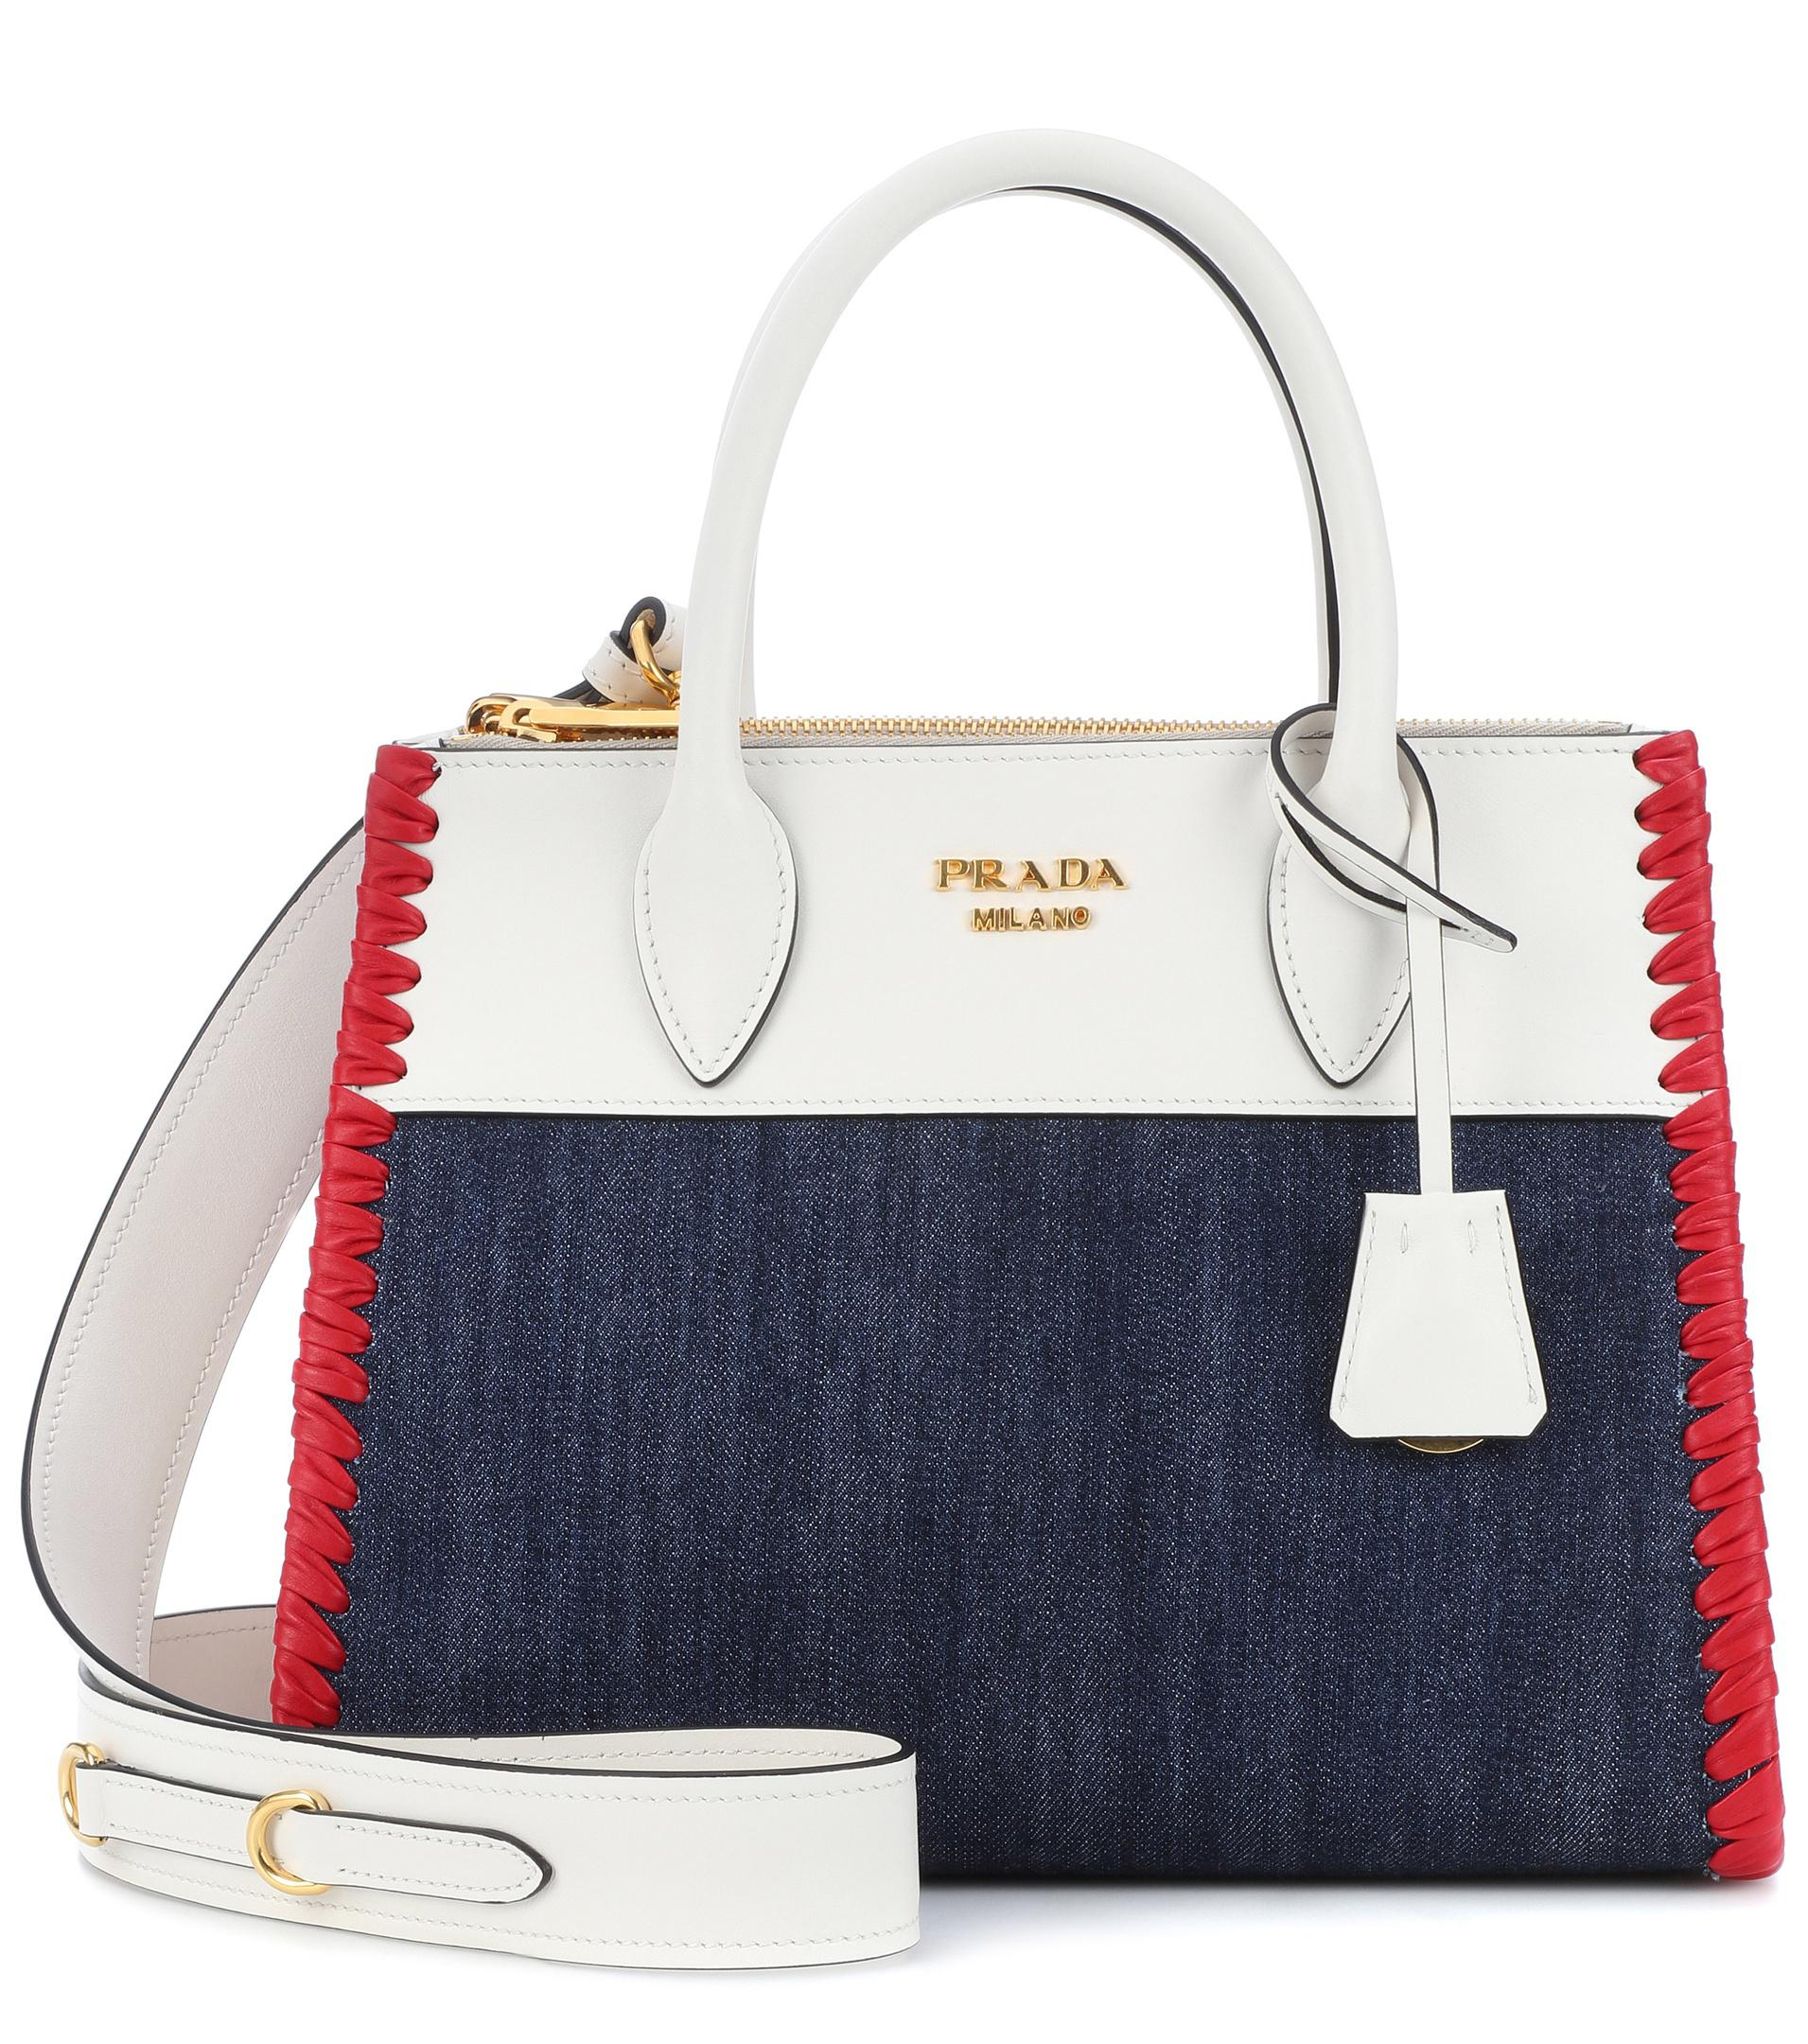 e7e2ef683f0067 Lyst - Prada Paradigme Leather And Denim Handbag in White